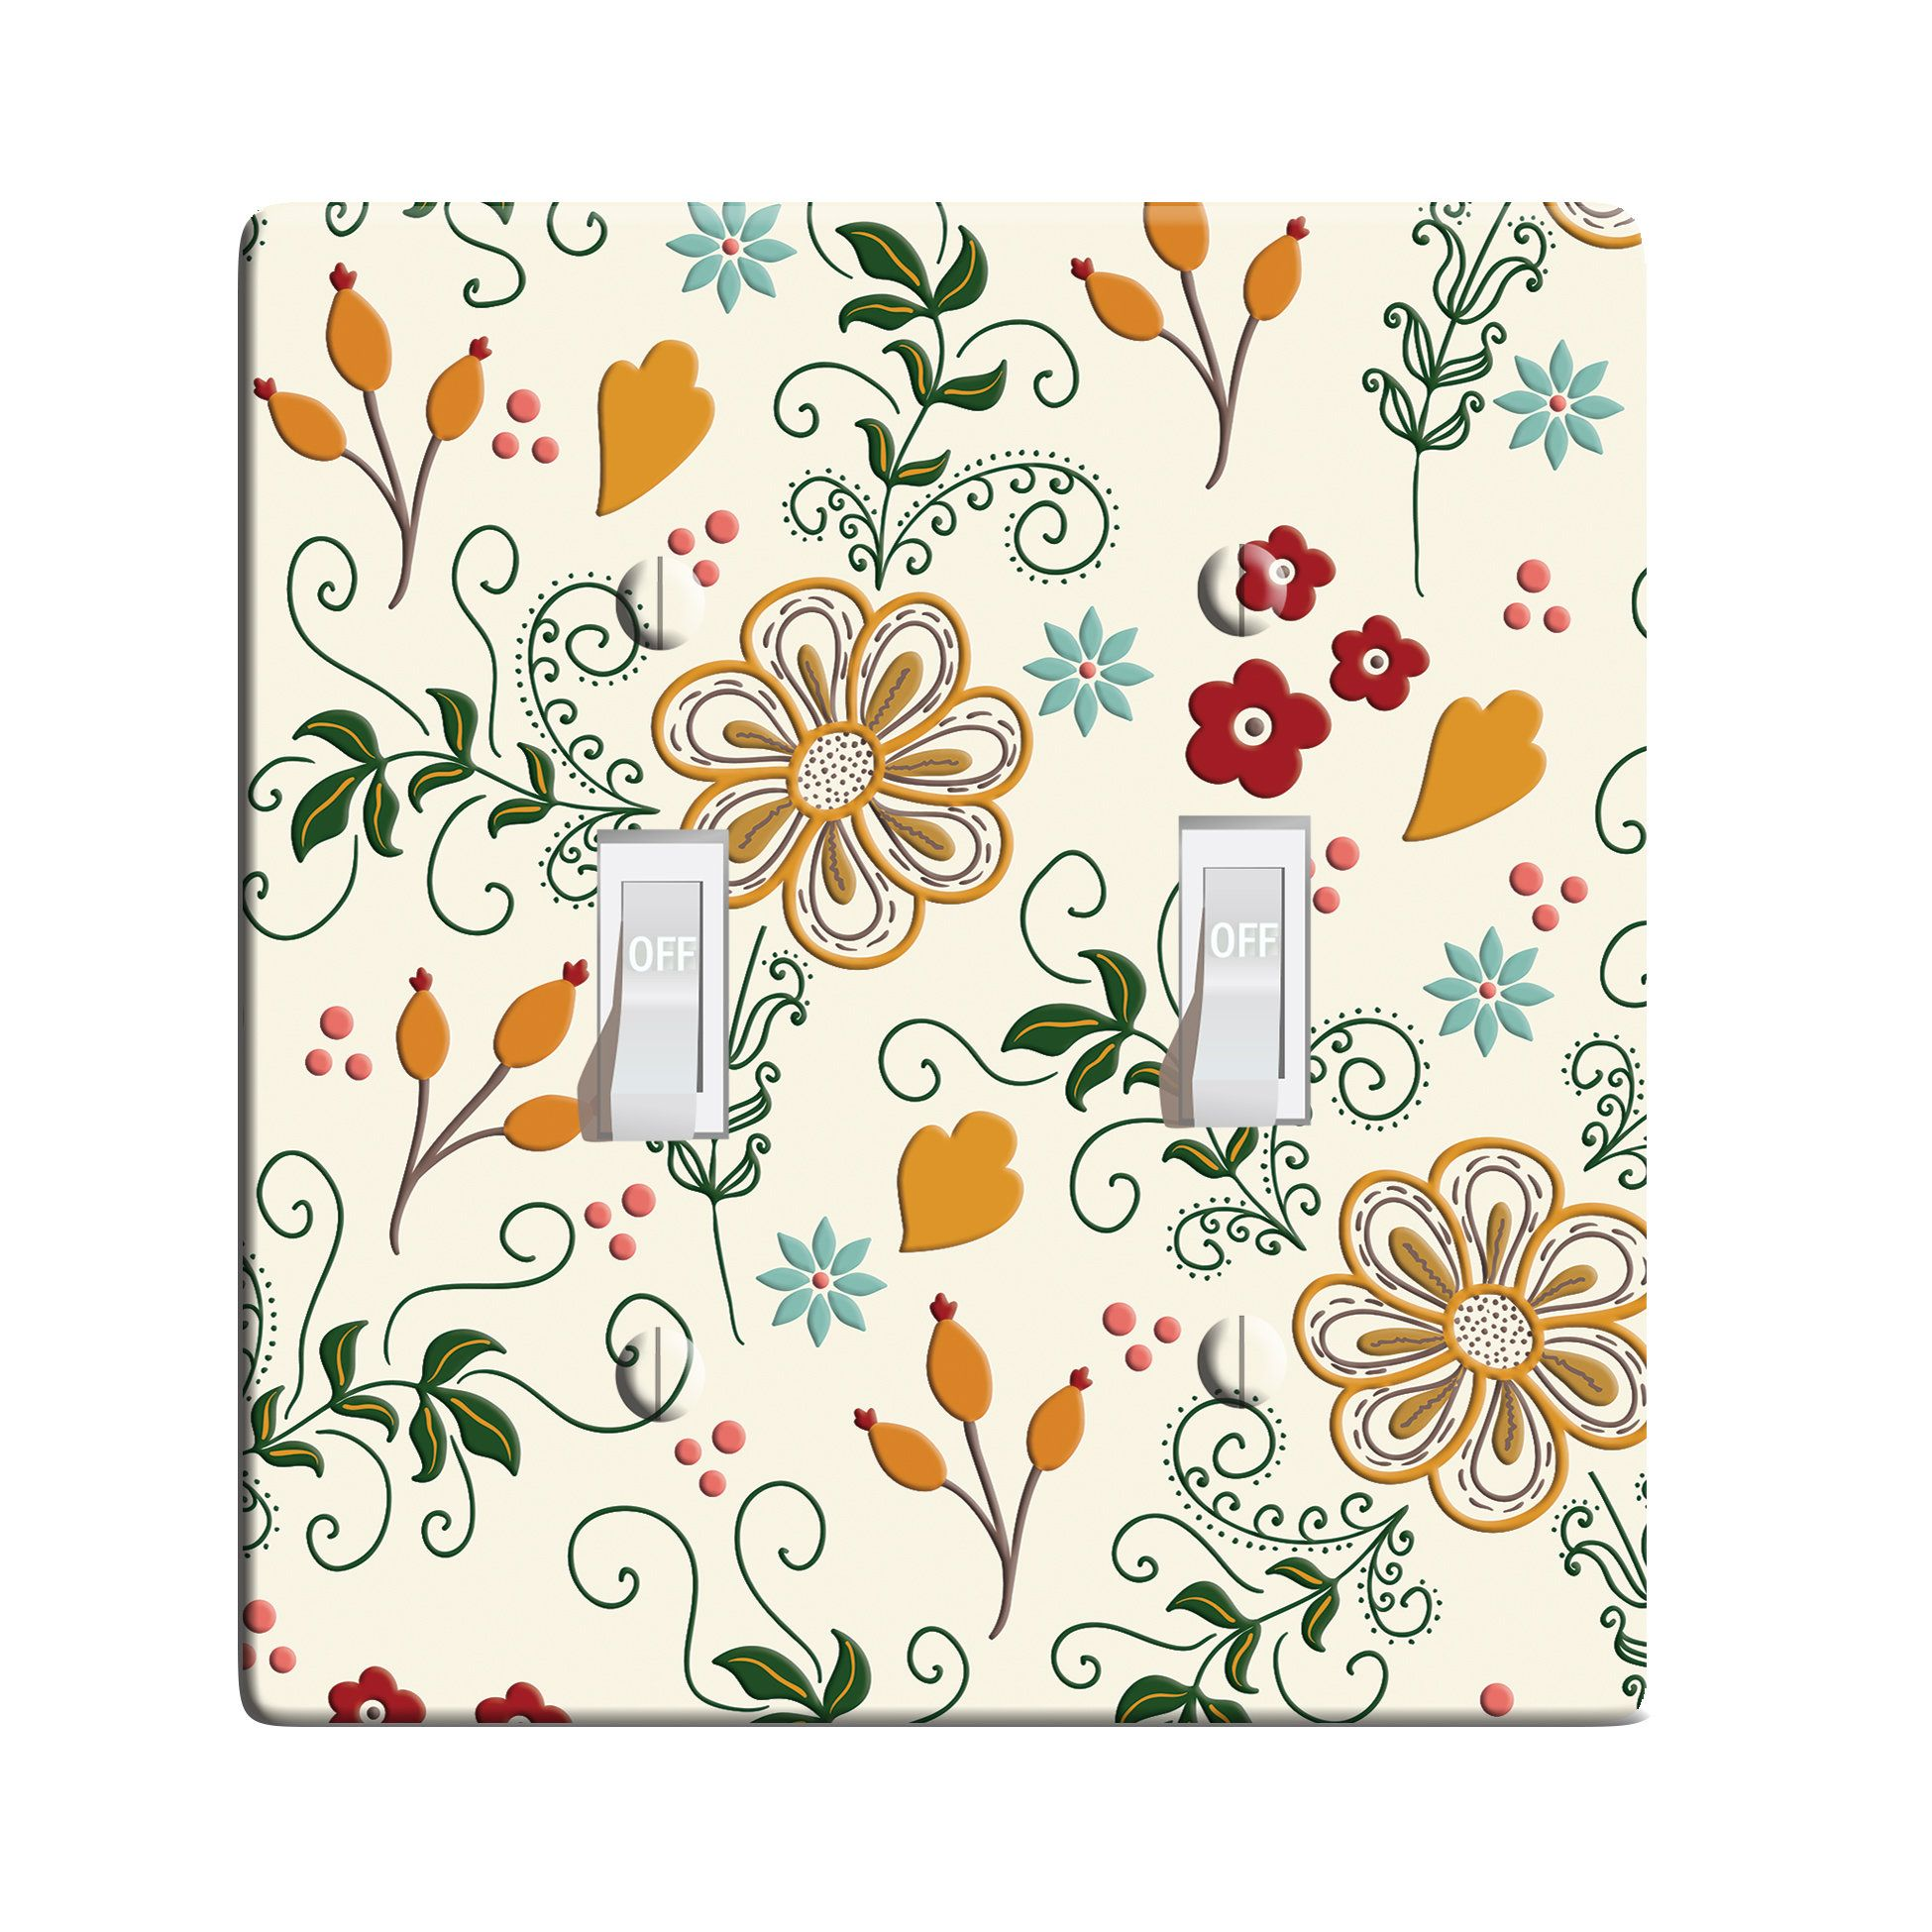 3d Printed Maxi Metal Village Flower Plate Light Switch Outlet Cover Custom Plate Choose Style L0031 Custom Plates Outlet Covers Flower Plates